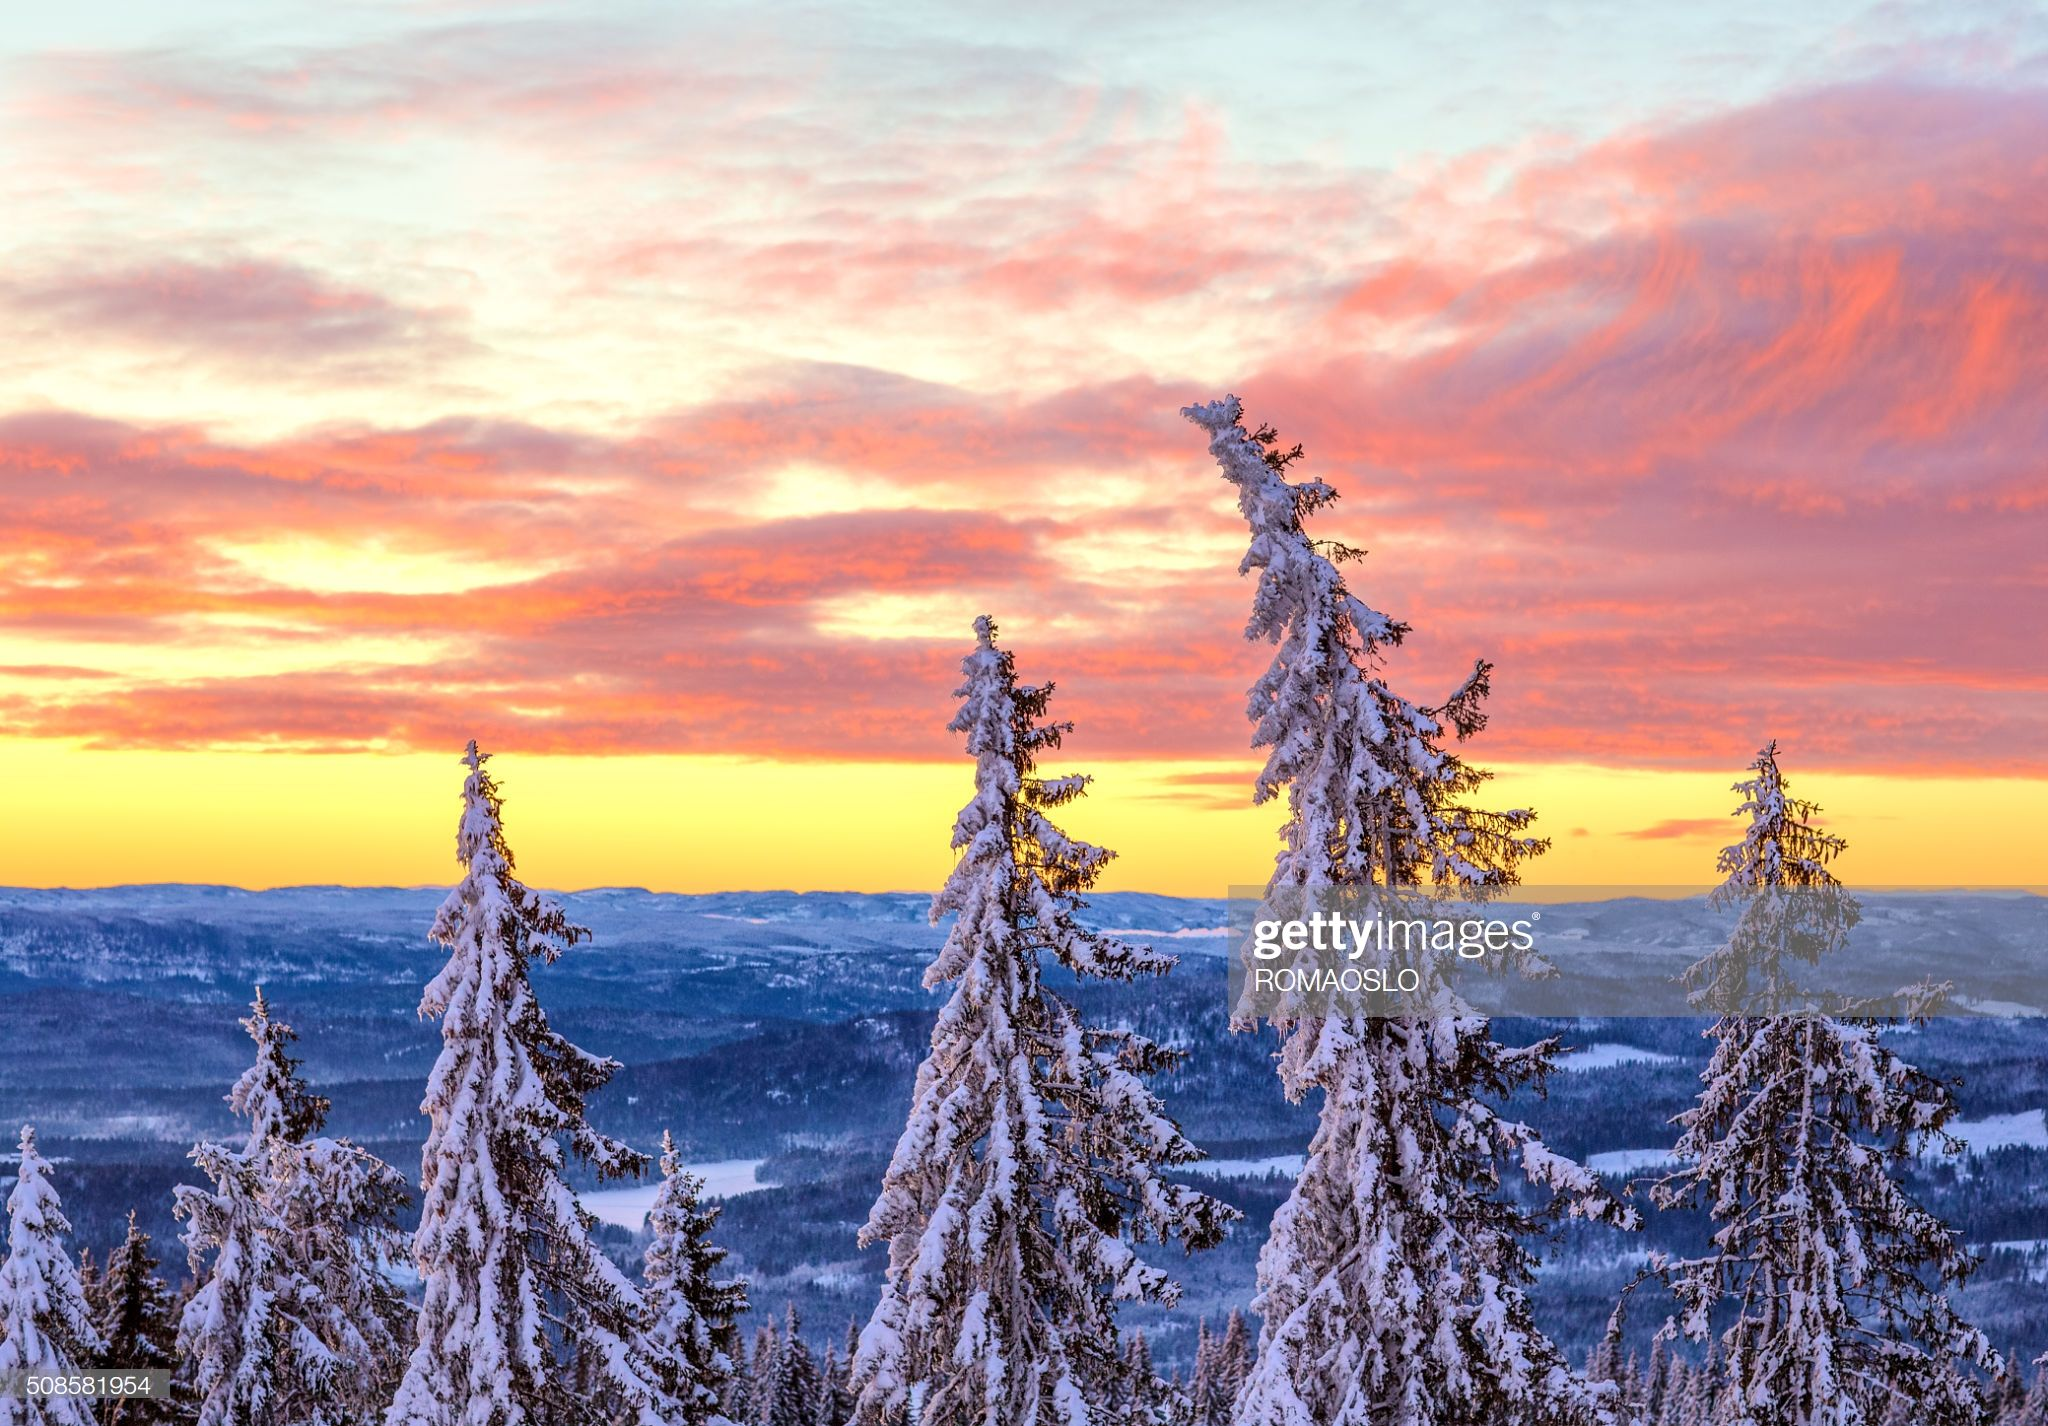 Snow Covered Spruce Tree Forest At Sunset In January Oslo Norway Spruce Tree Tree Forest Oslo Sunset forest snow winter spruce trees